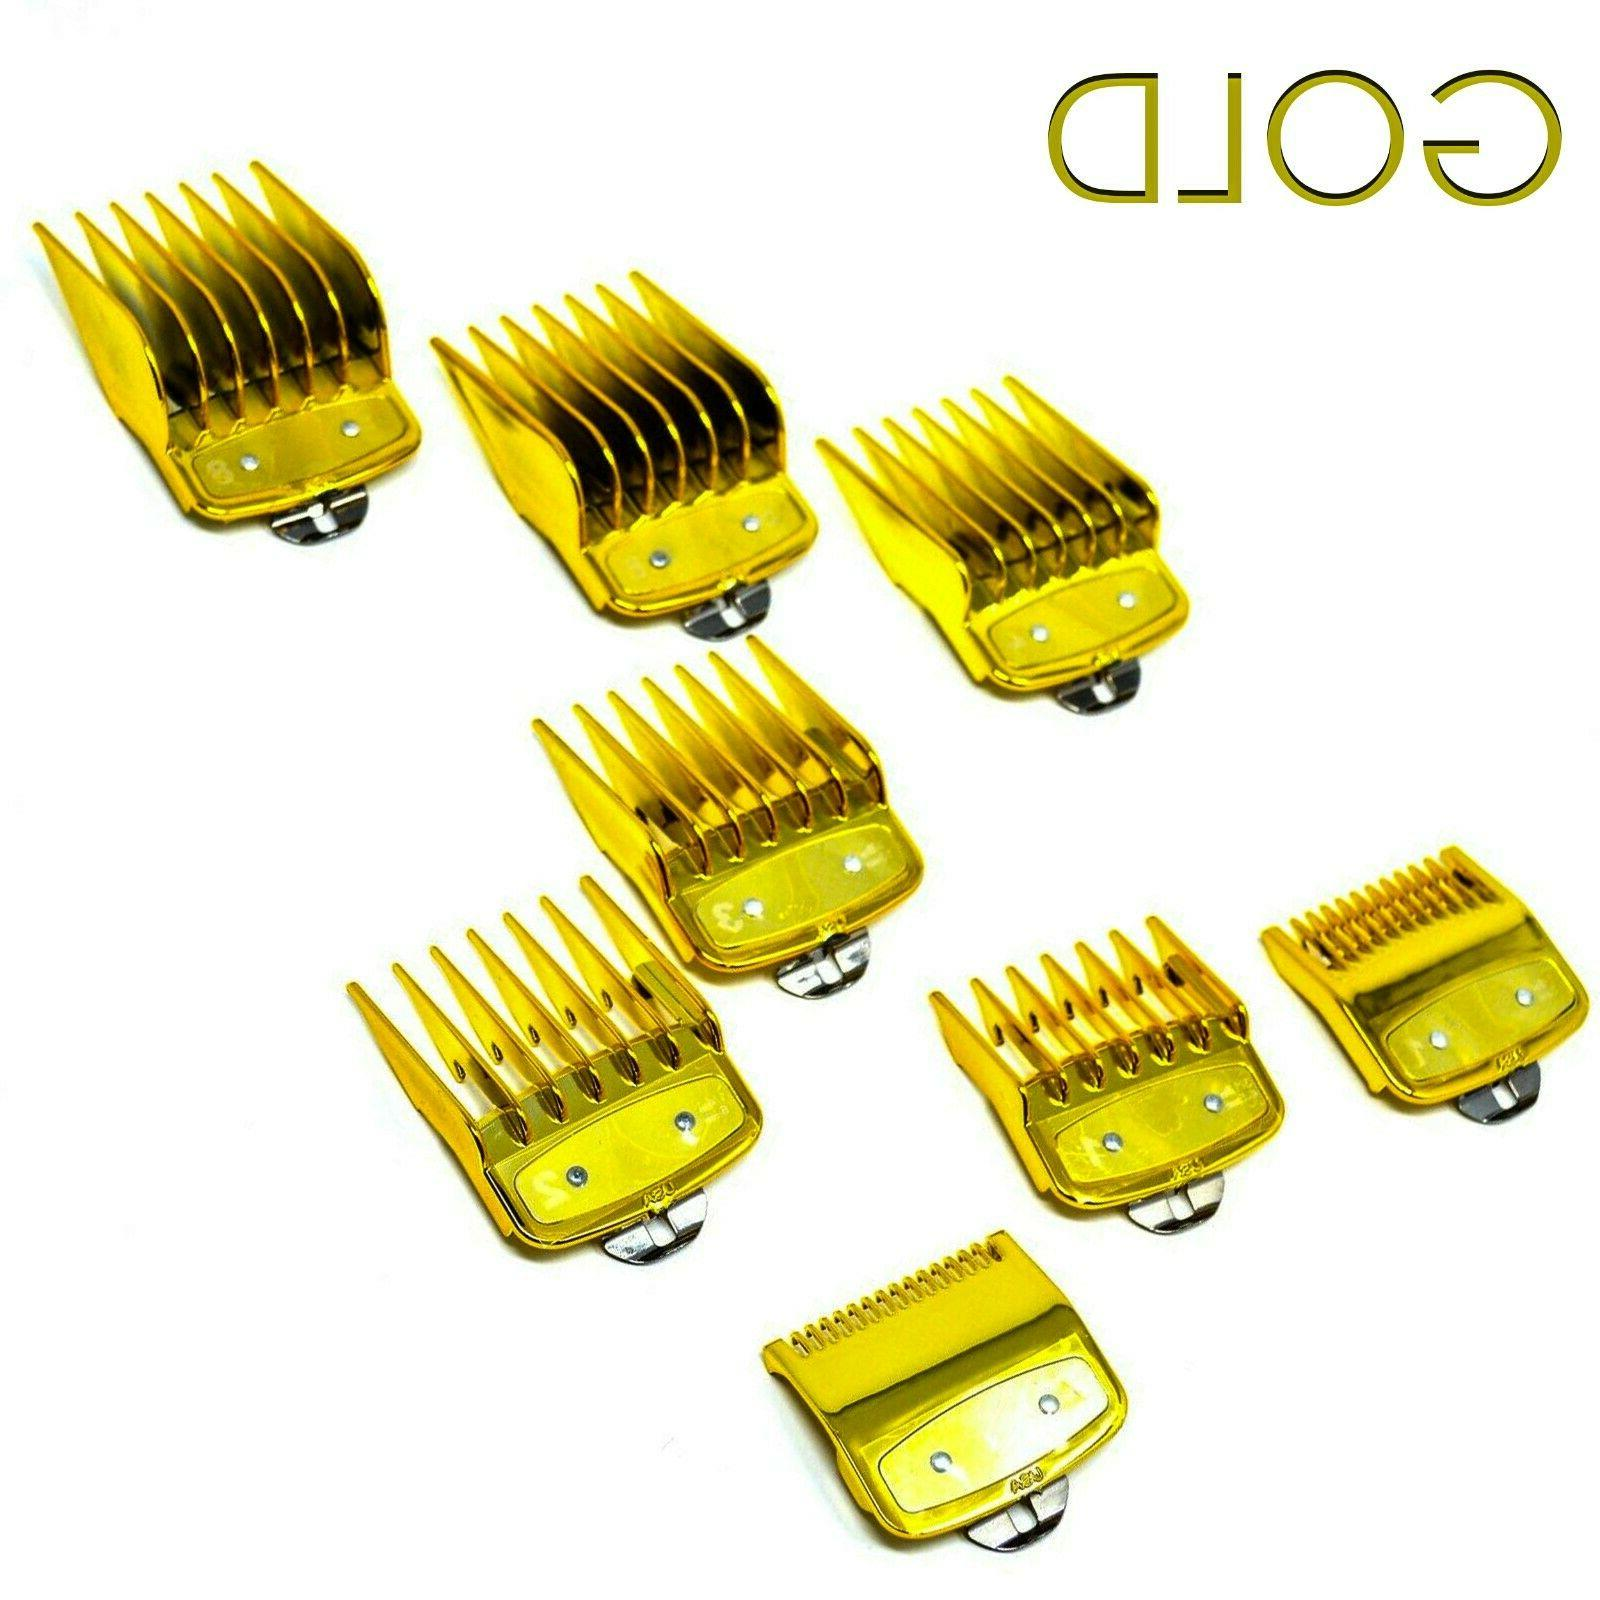 gold comb set guards for wahl hair